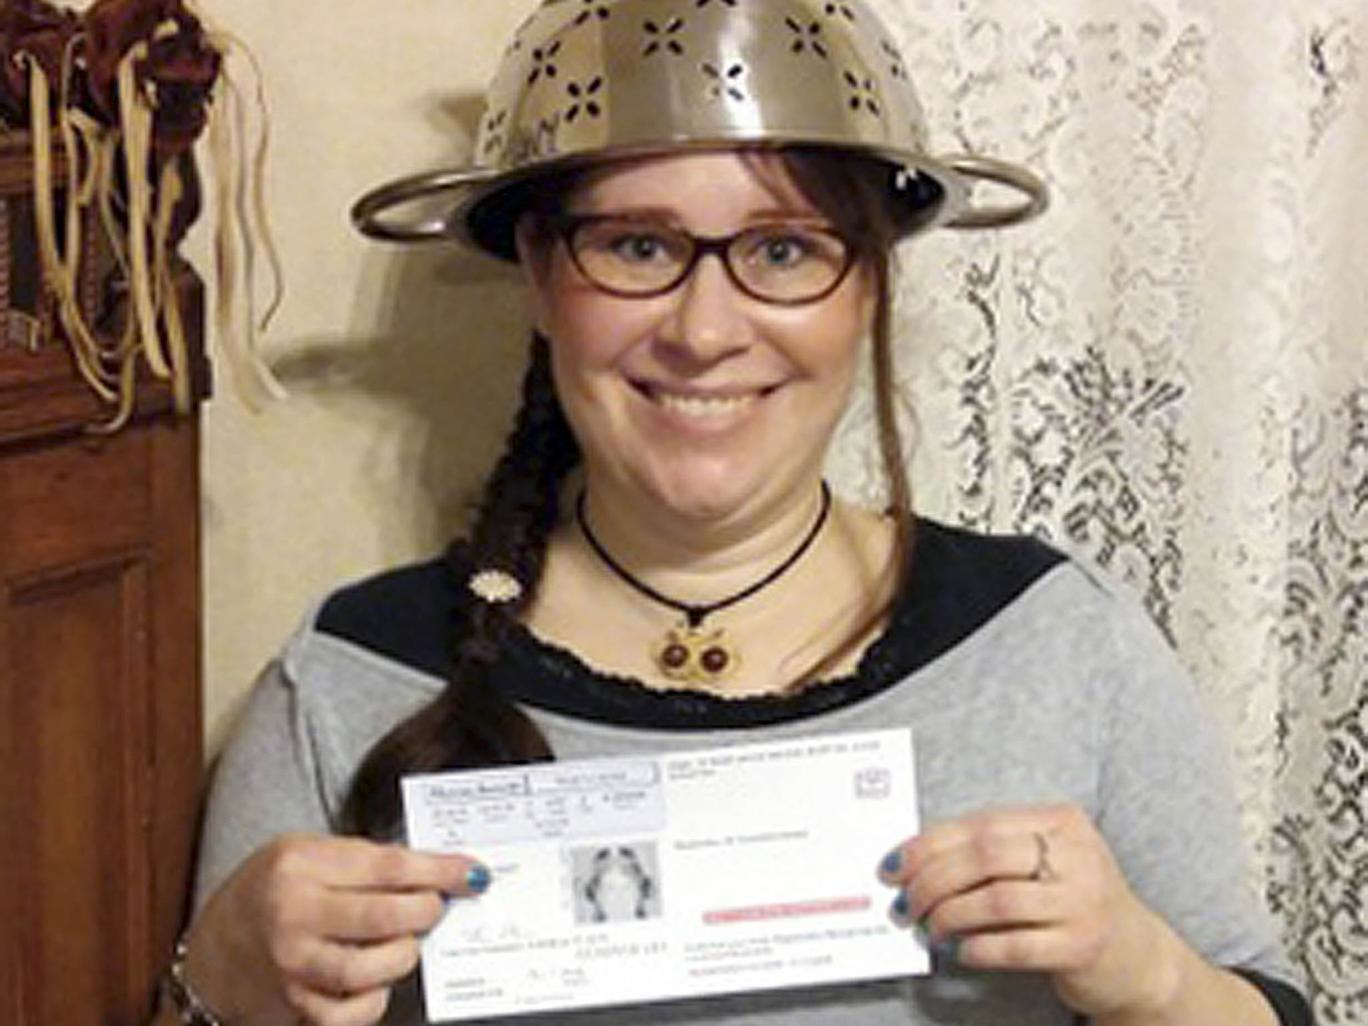 Woman Allowed To Wear Pasta Strainer On Head In Driving License Photo On Religious Grounds UNILAD pasta head 165030